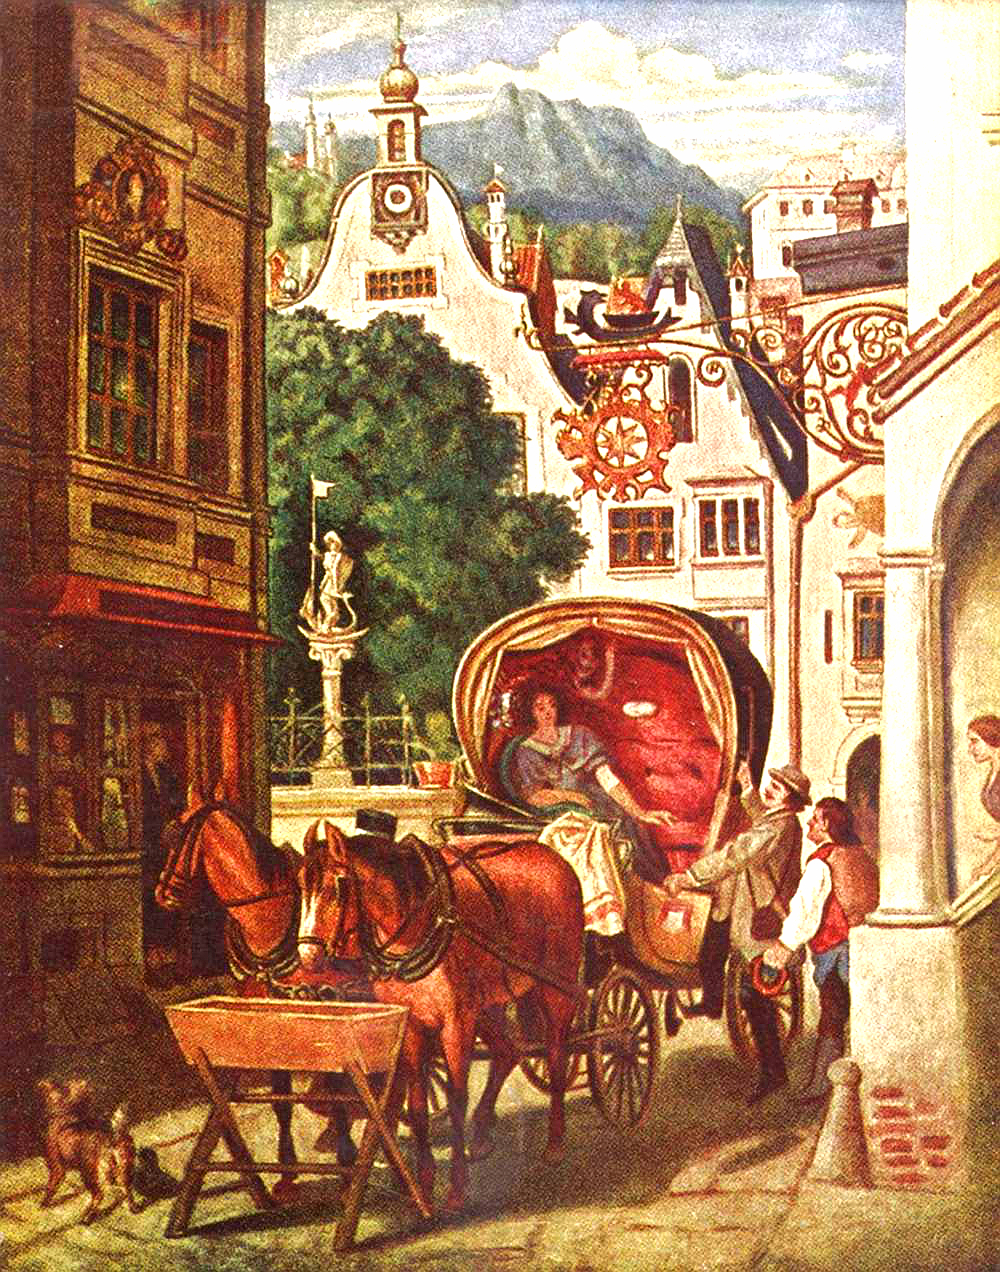 https://i0.wp.com/upload.wikimedia.org/wikipedia/commons/0/08/Moritz_von_Schwind_002.jpg